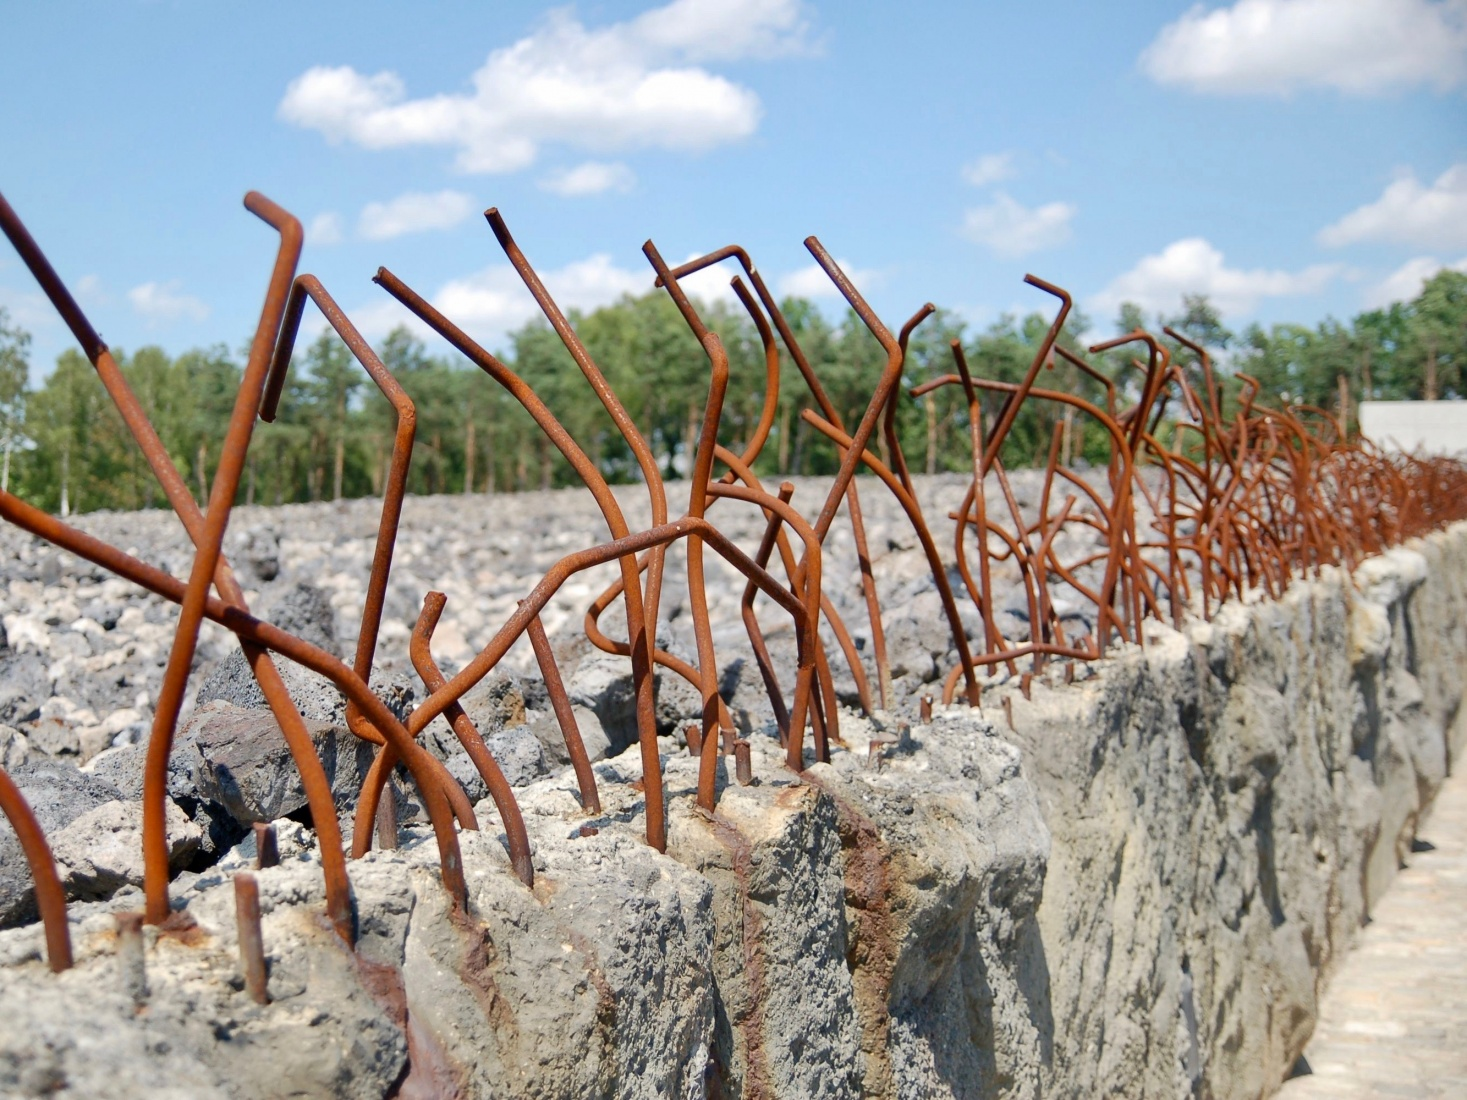 Rusting supports jutting through concrete at the Bełżec extermination camp in Poland.